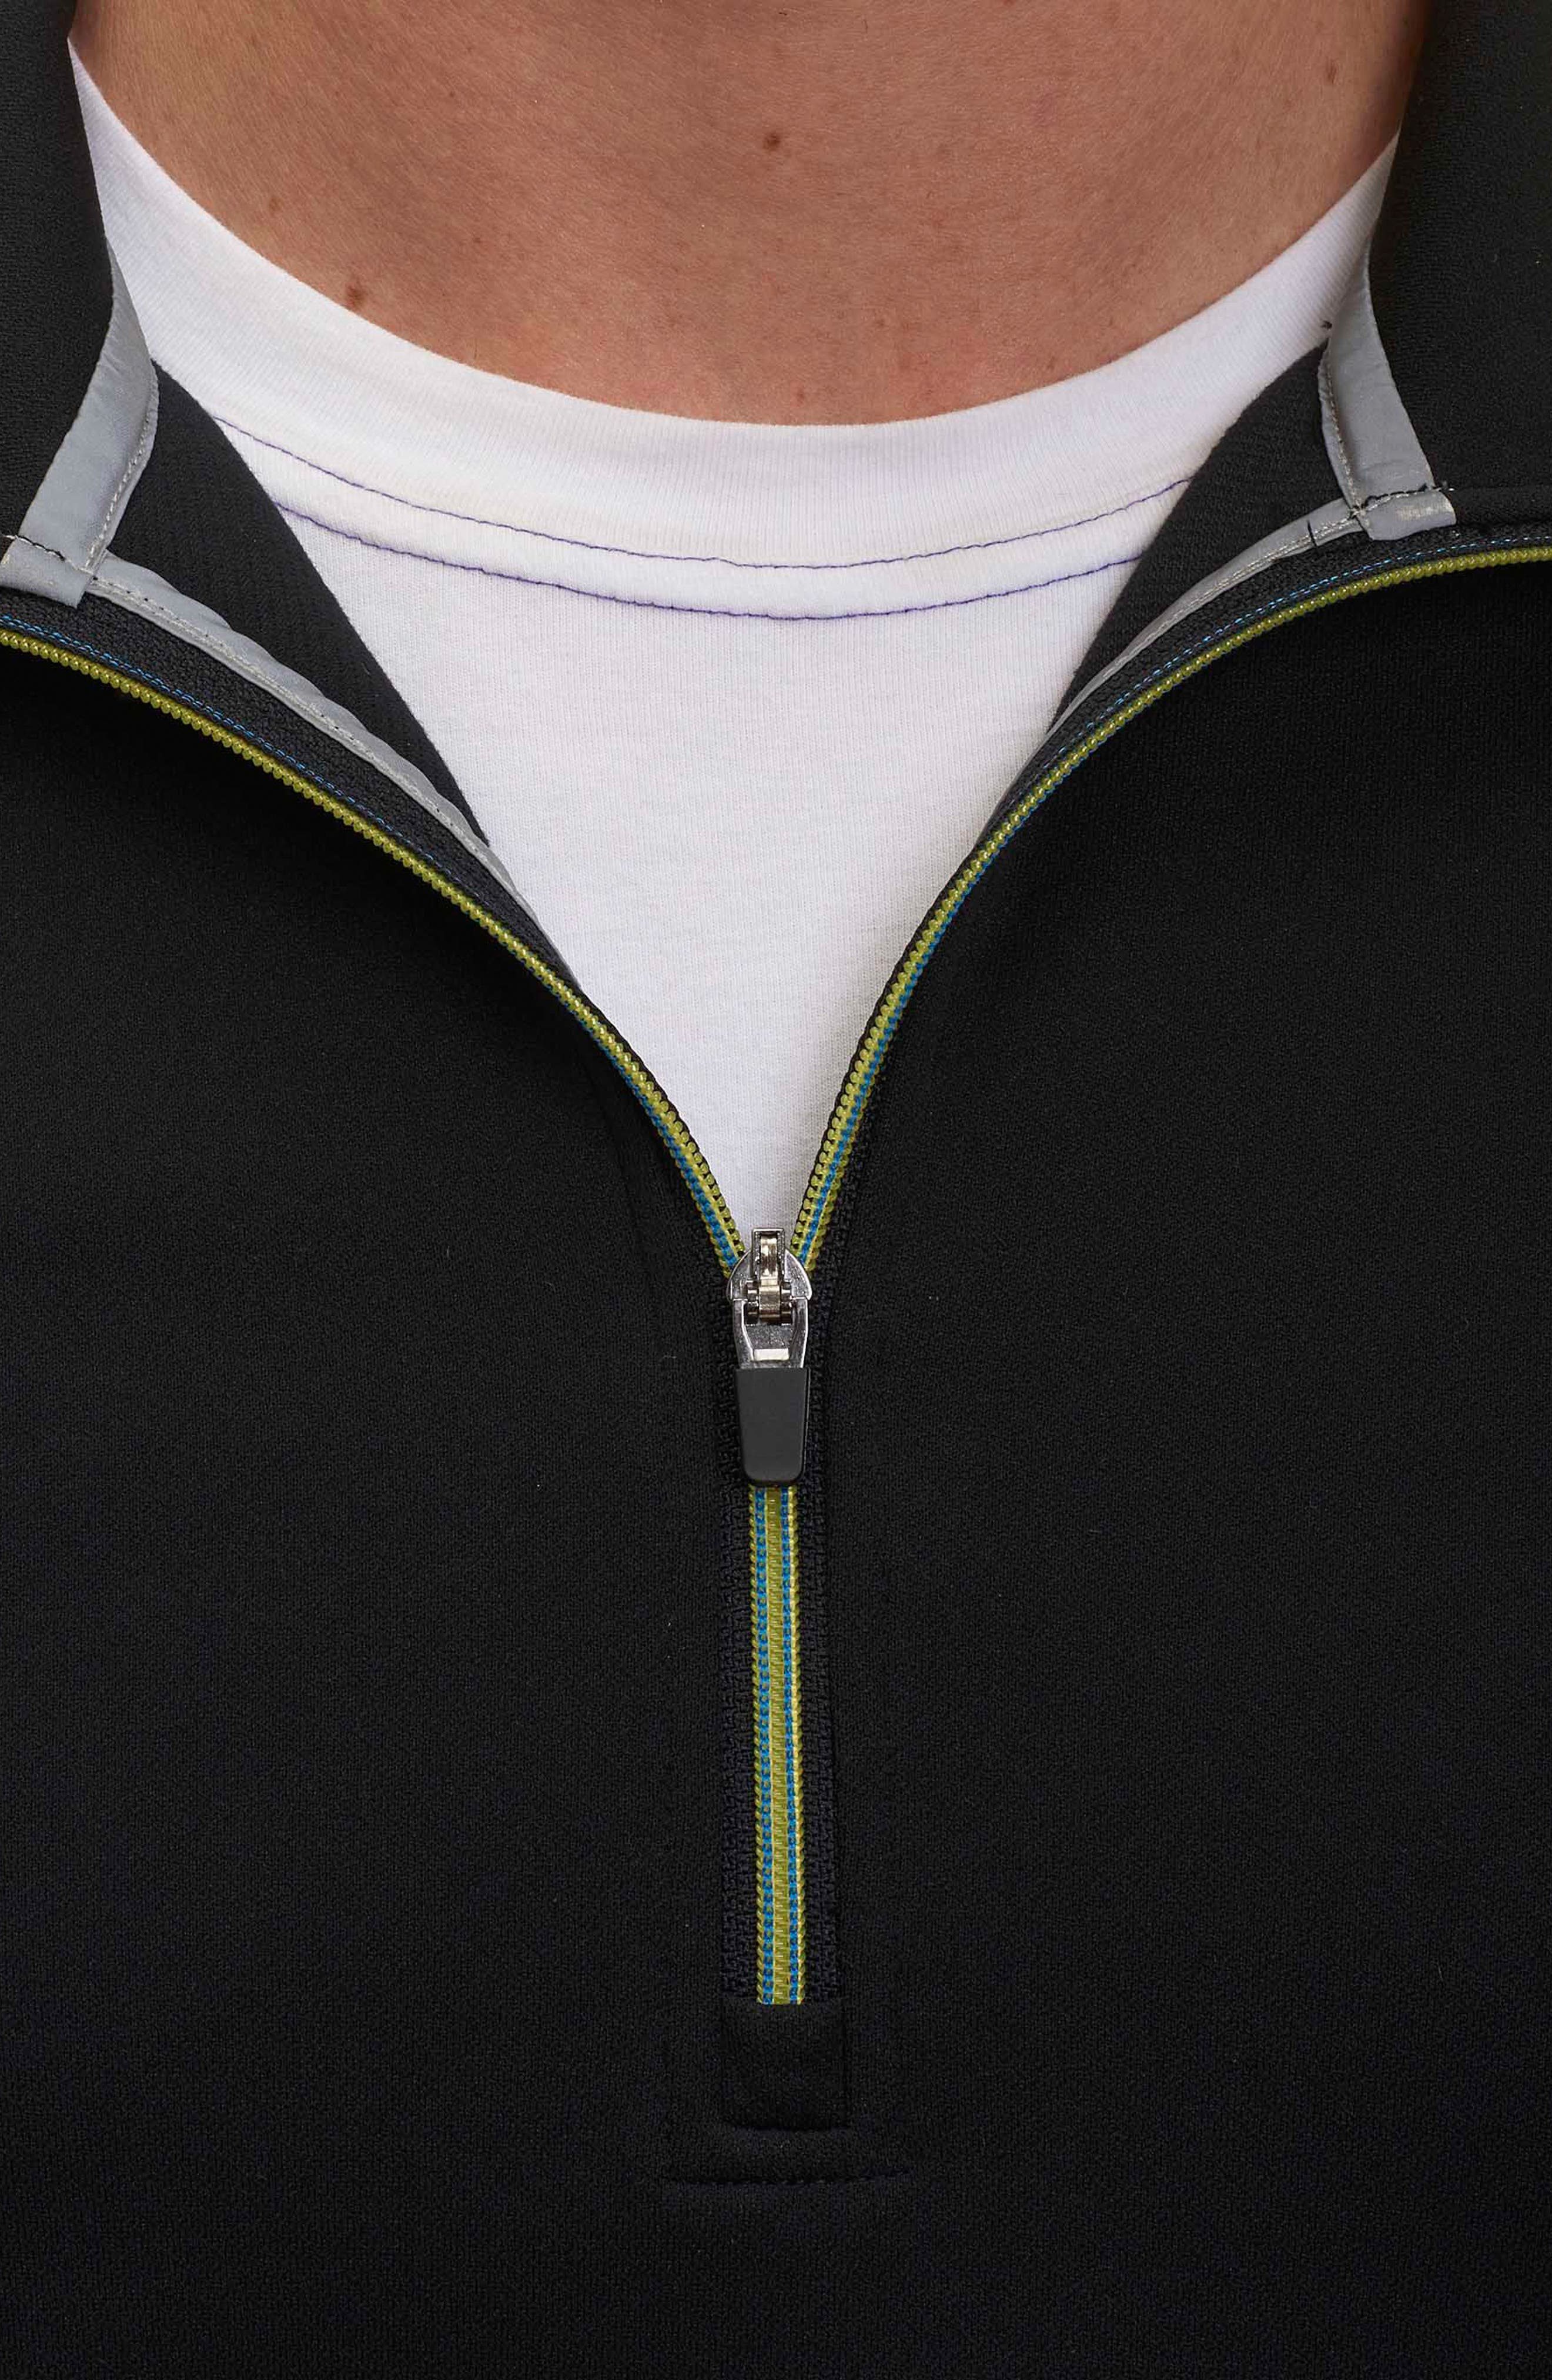 Taylore Quarter Zip Pullover,                             Alternate thumbnail 3, color,                             001